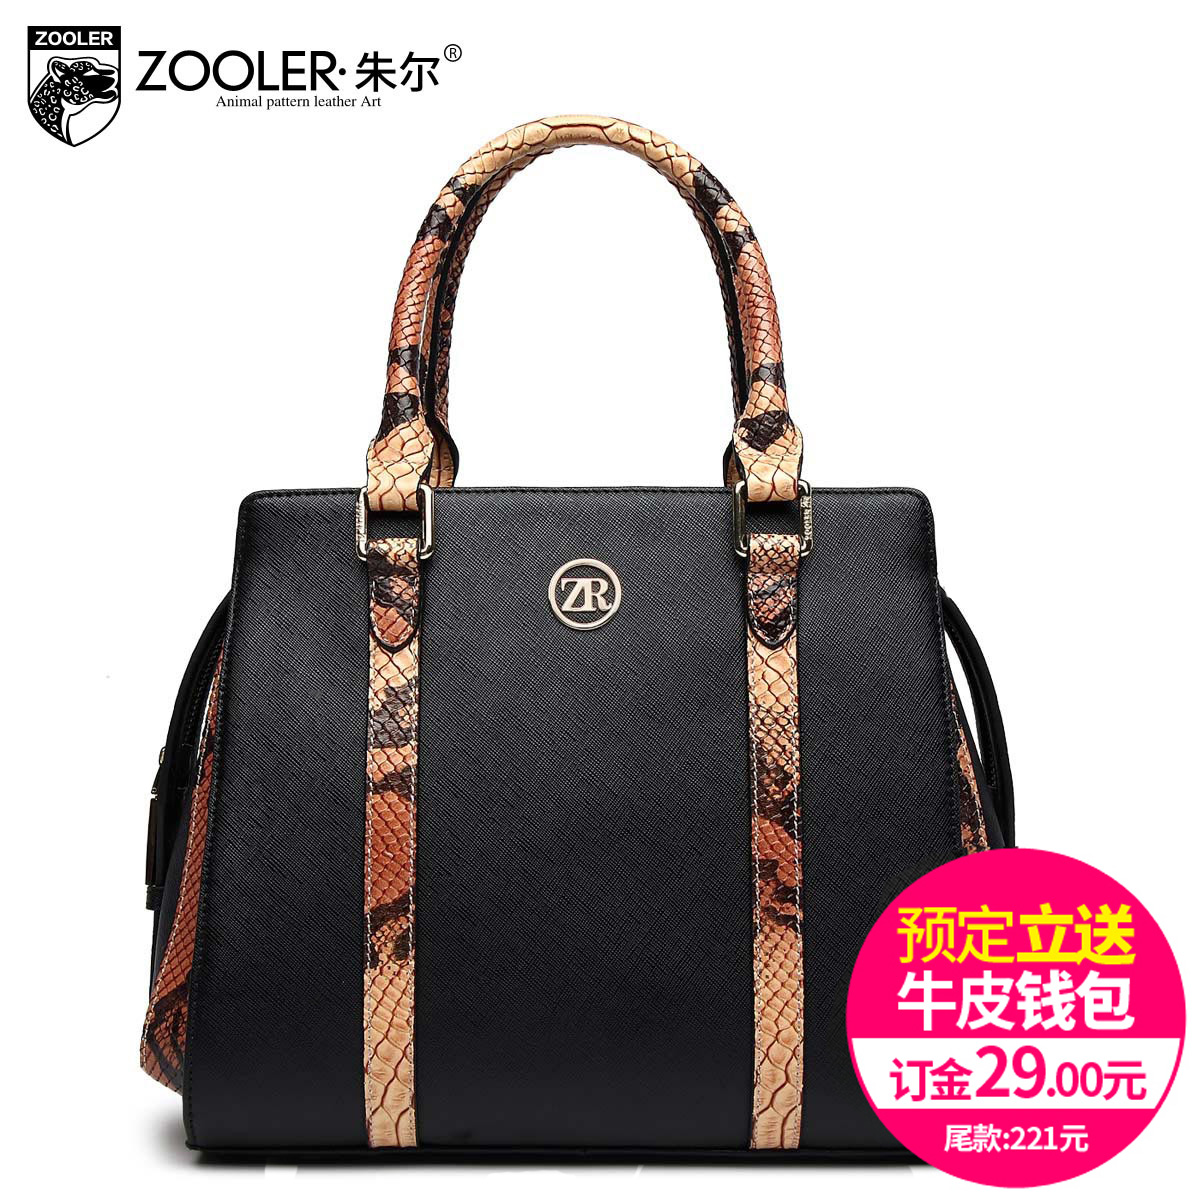 Casual women genuine leather handbag fashion shoulder bag with handle cowhide women's handbag female bolsas femininas